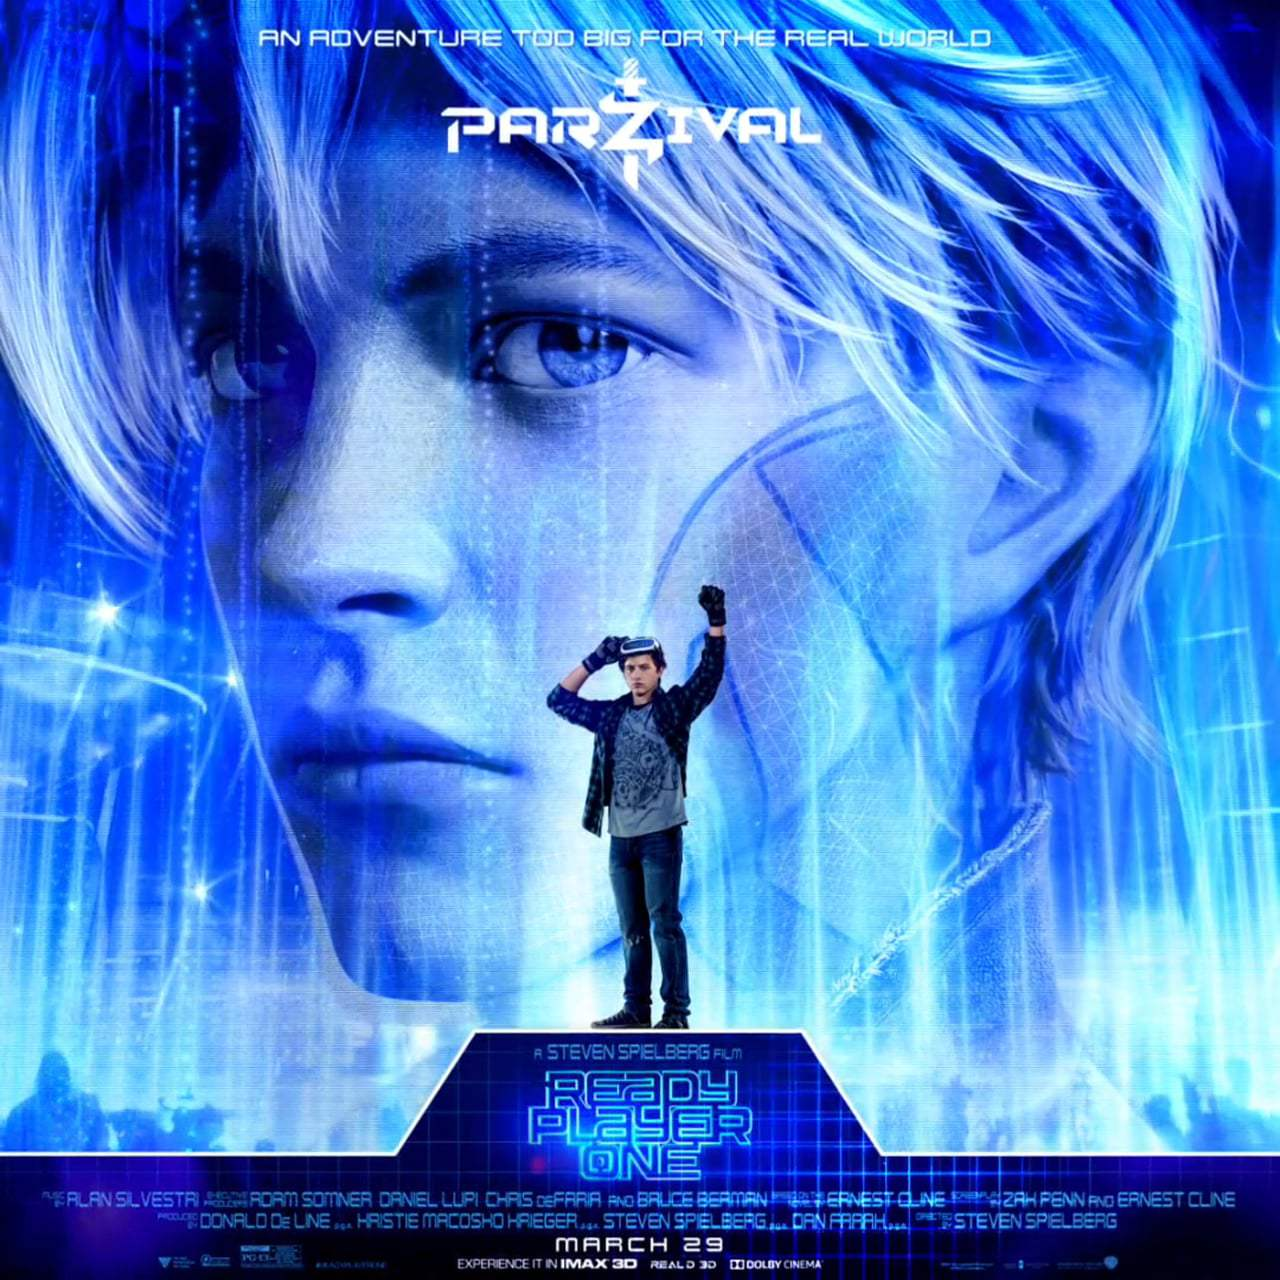 Ready Player One Character Motion Posters (2018) Screen Capture #2